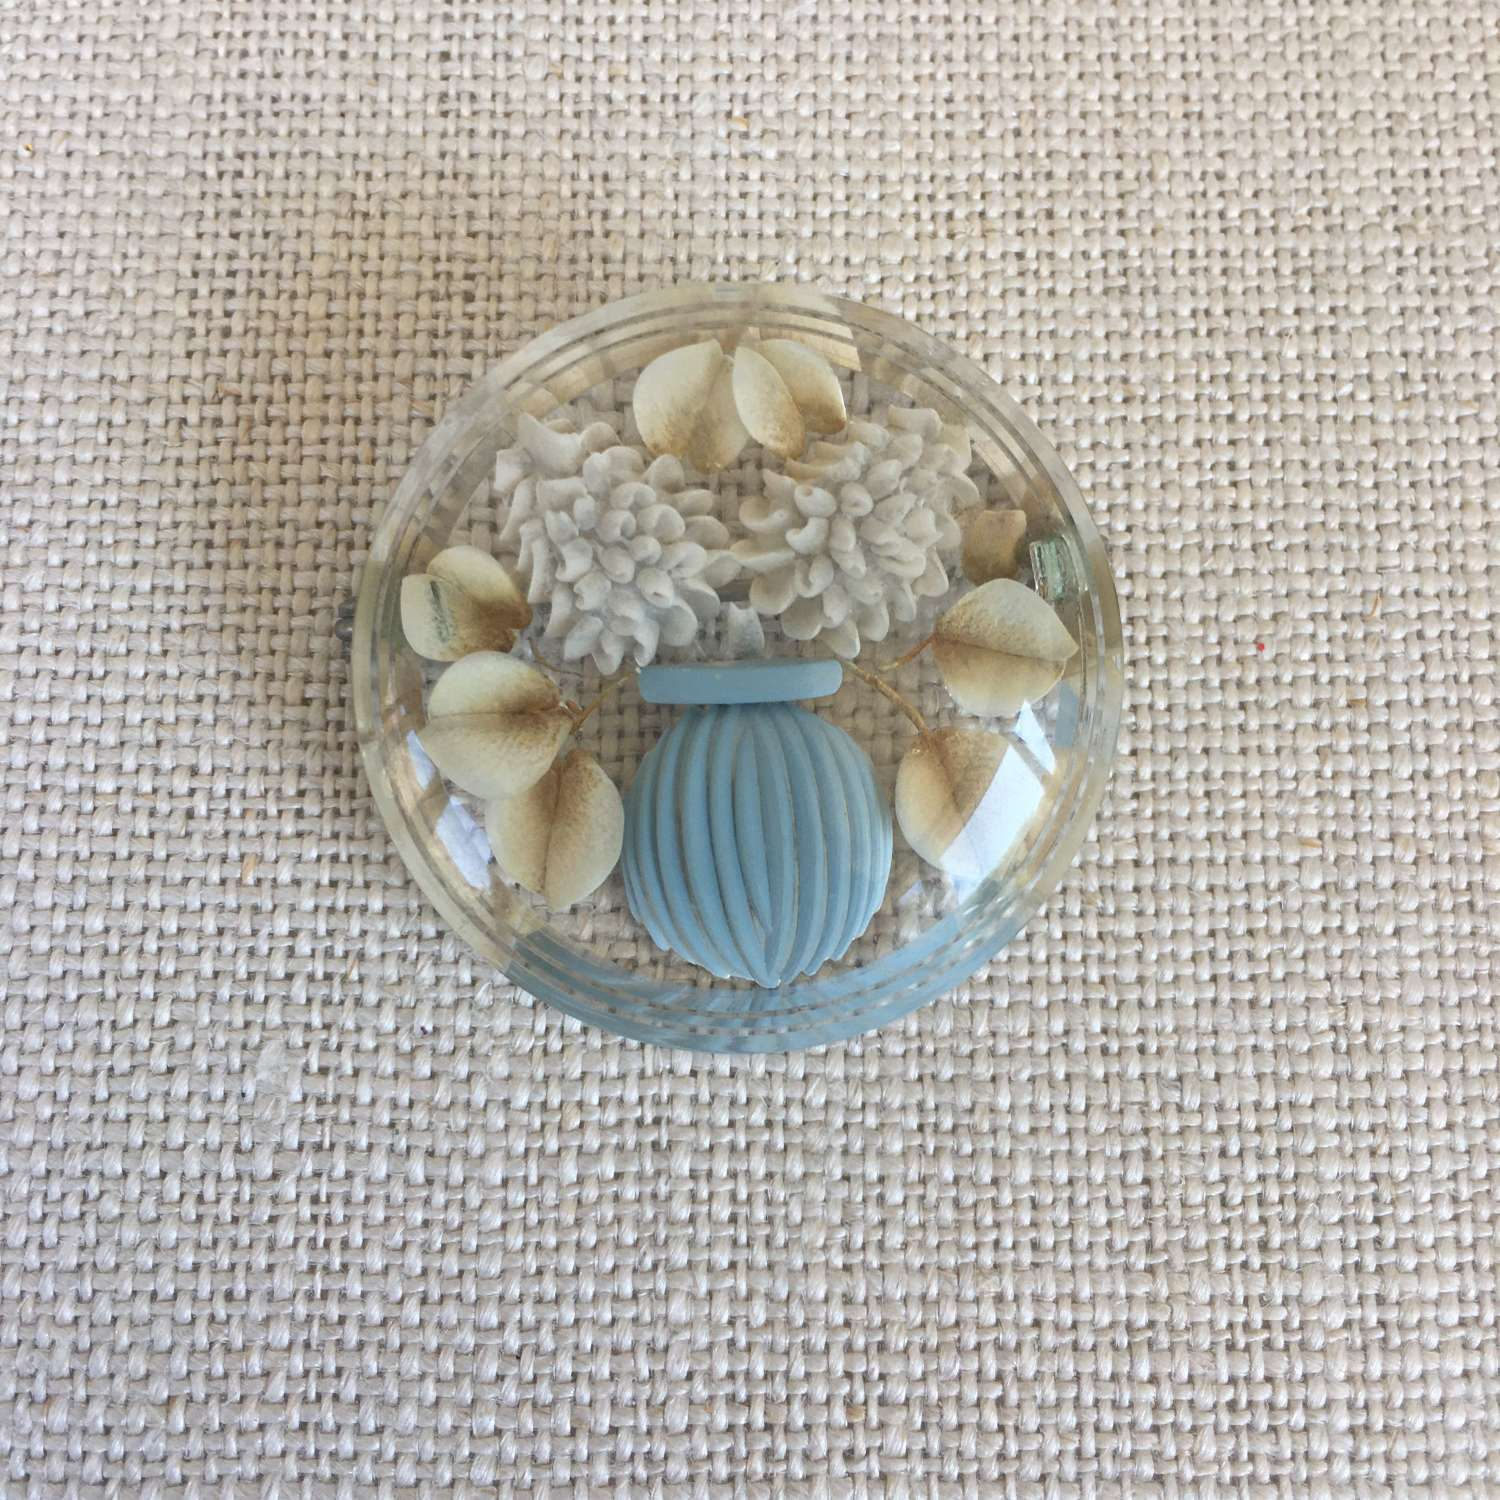 Vintage round lucite brooch with blue vase and cream flowers